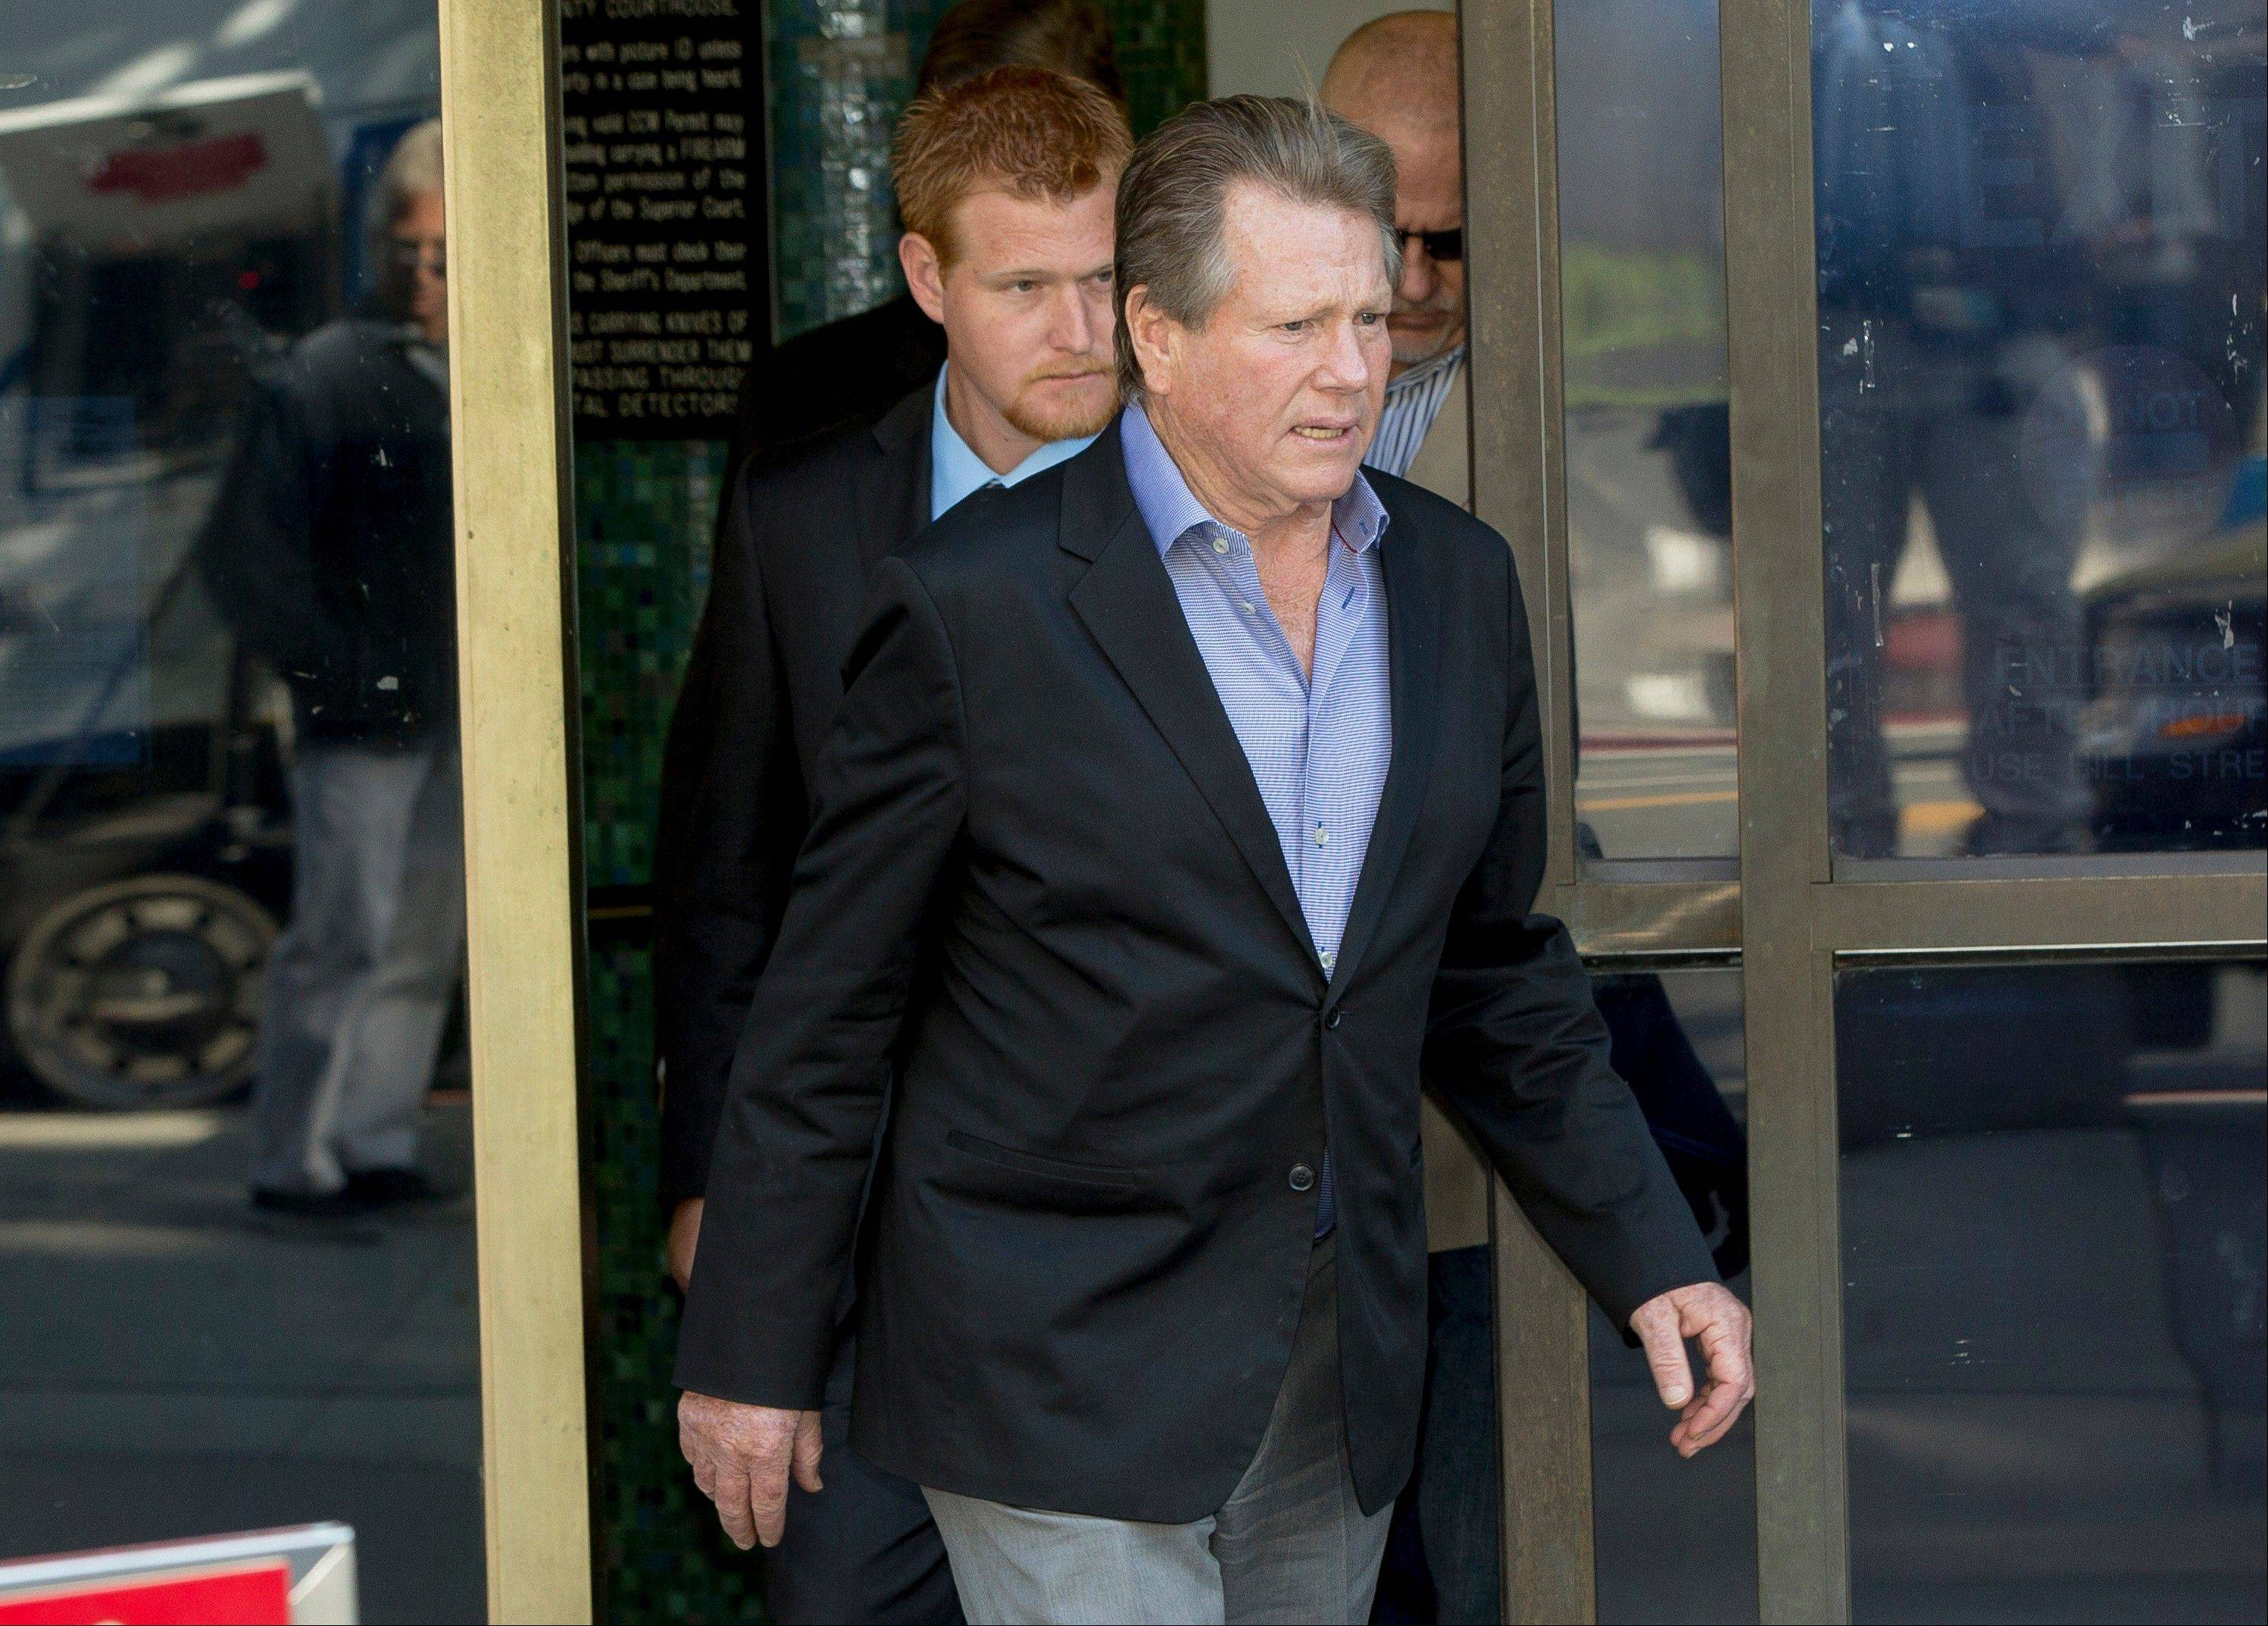 Ryan O�Neal, center, followed by his son, Redmond O�Neal, as they exit court for a lunch break in Los Angeles.